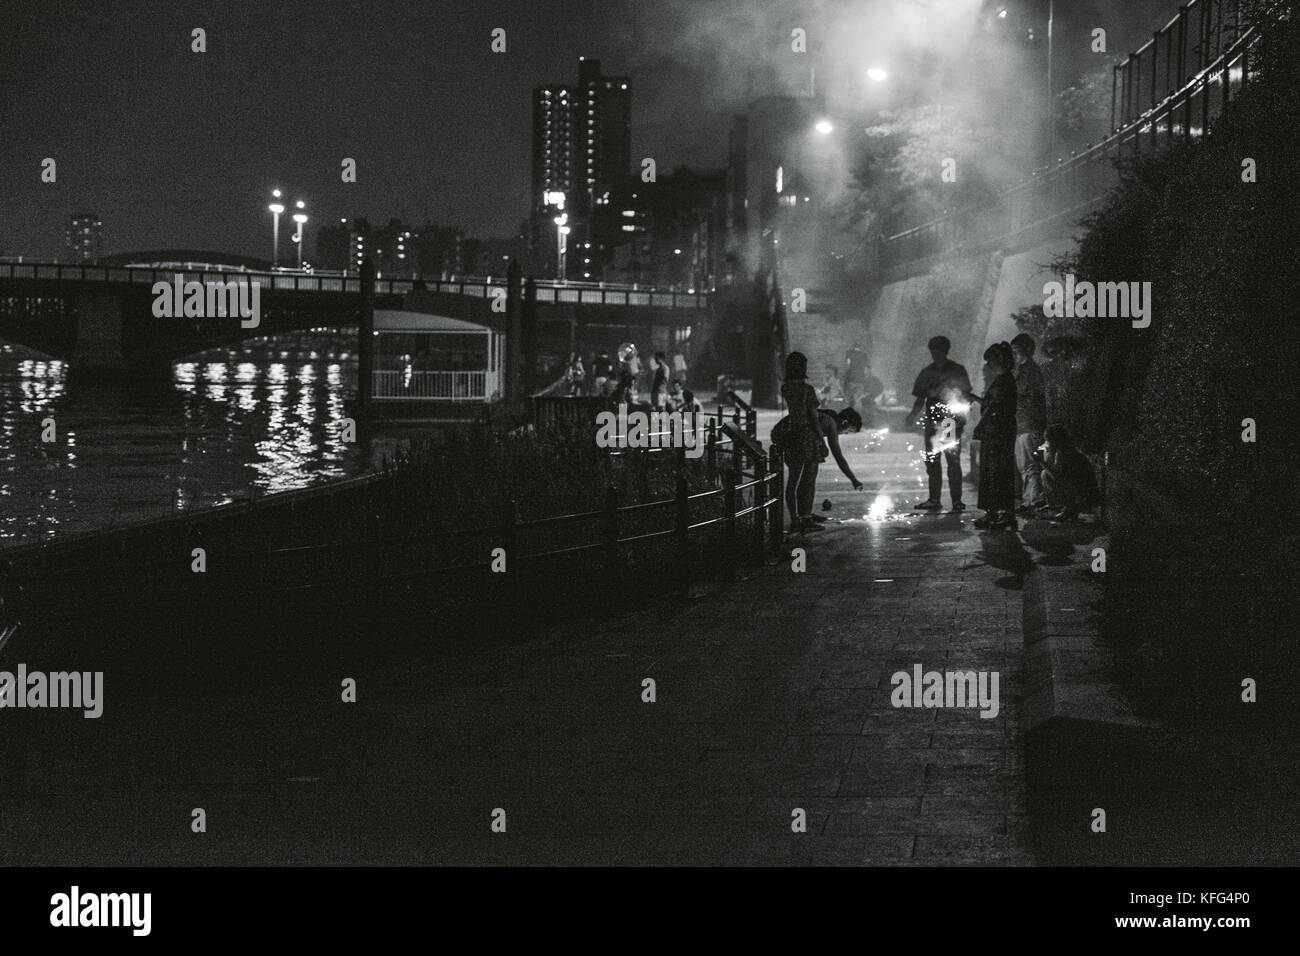 People setting off fireworks by the waters edge in Asakusa, Tokyo. Stock Photo